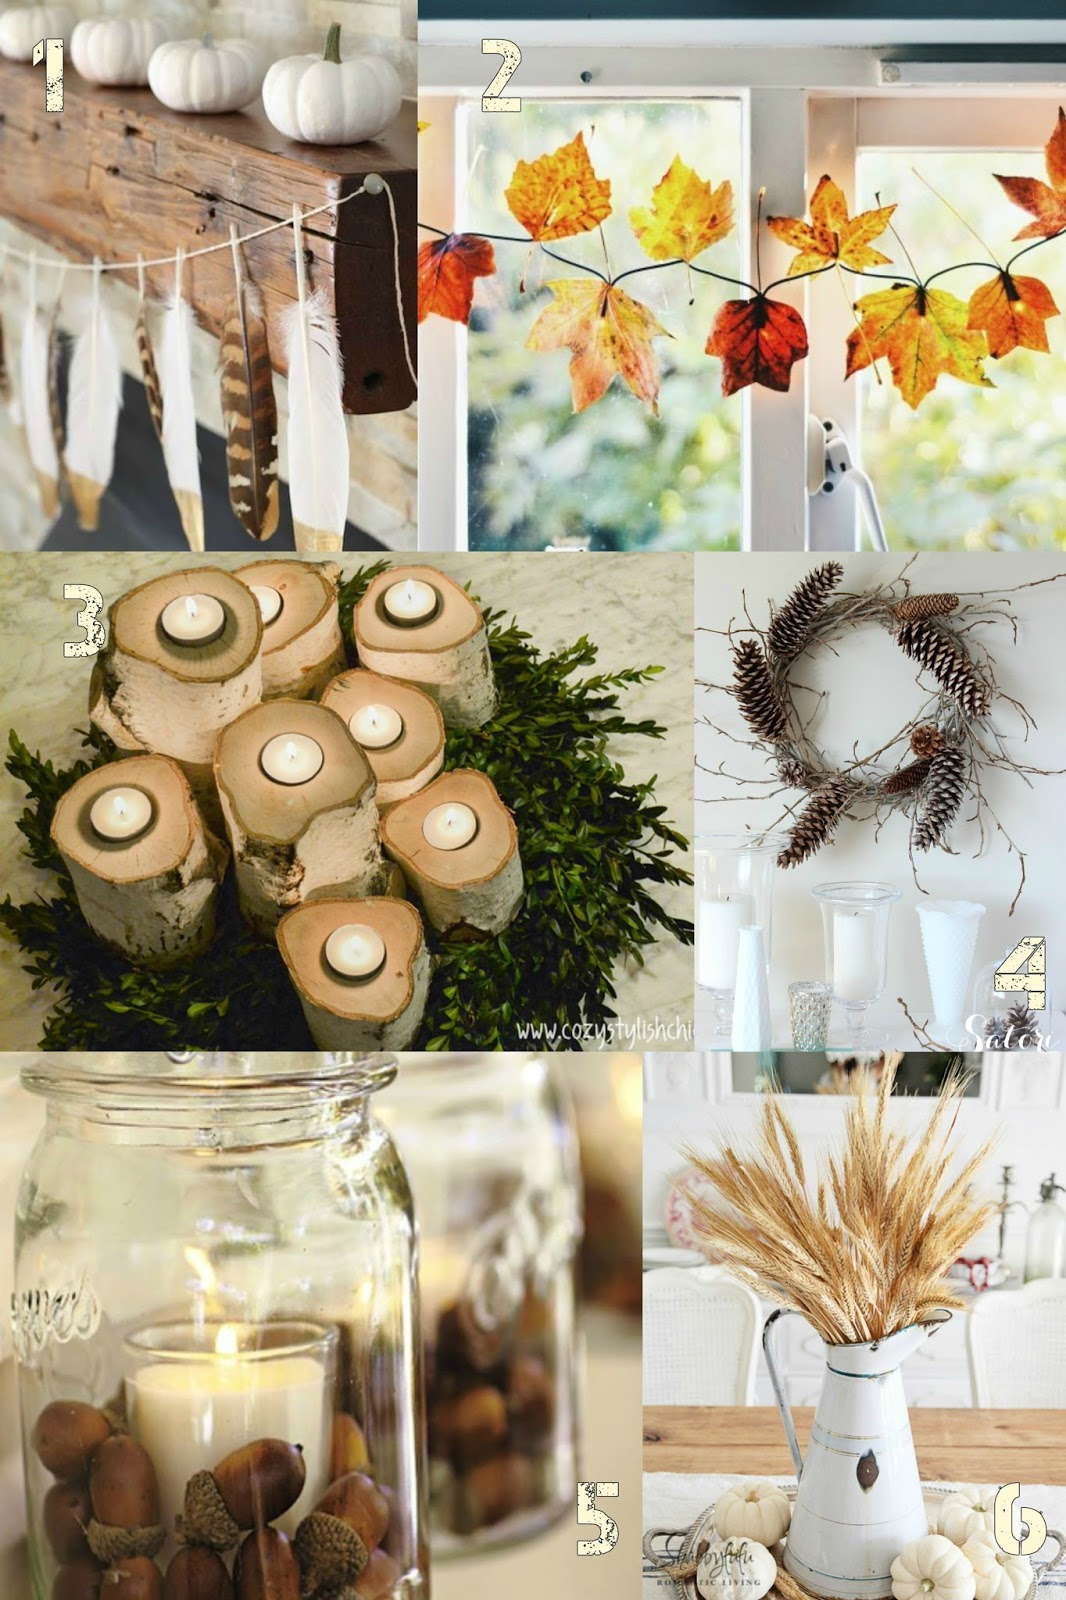 Using Nature to Decorate Your Home - Little Vintage Cottage